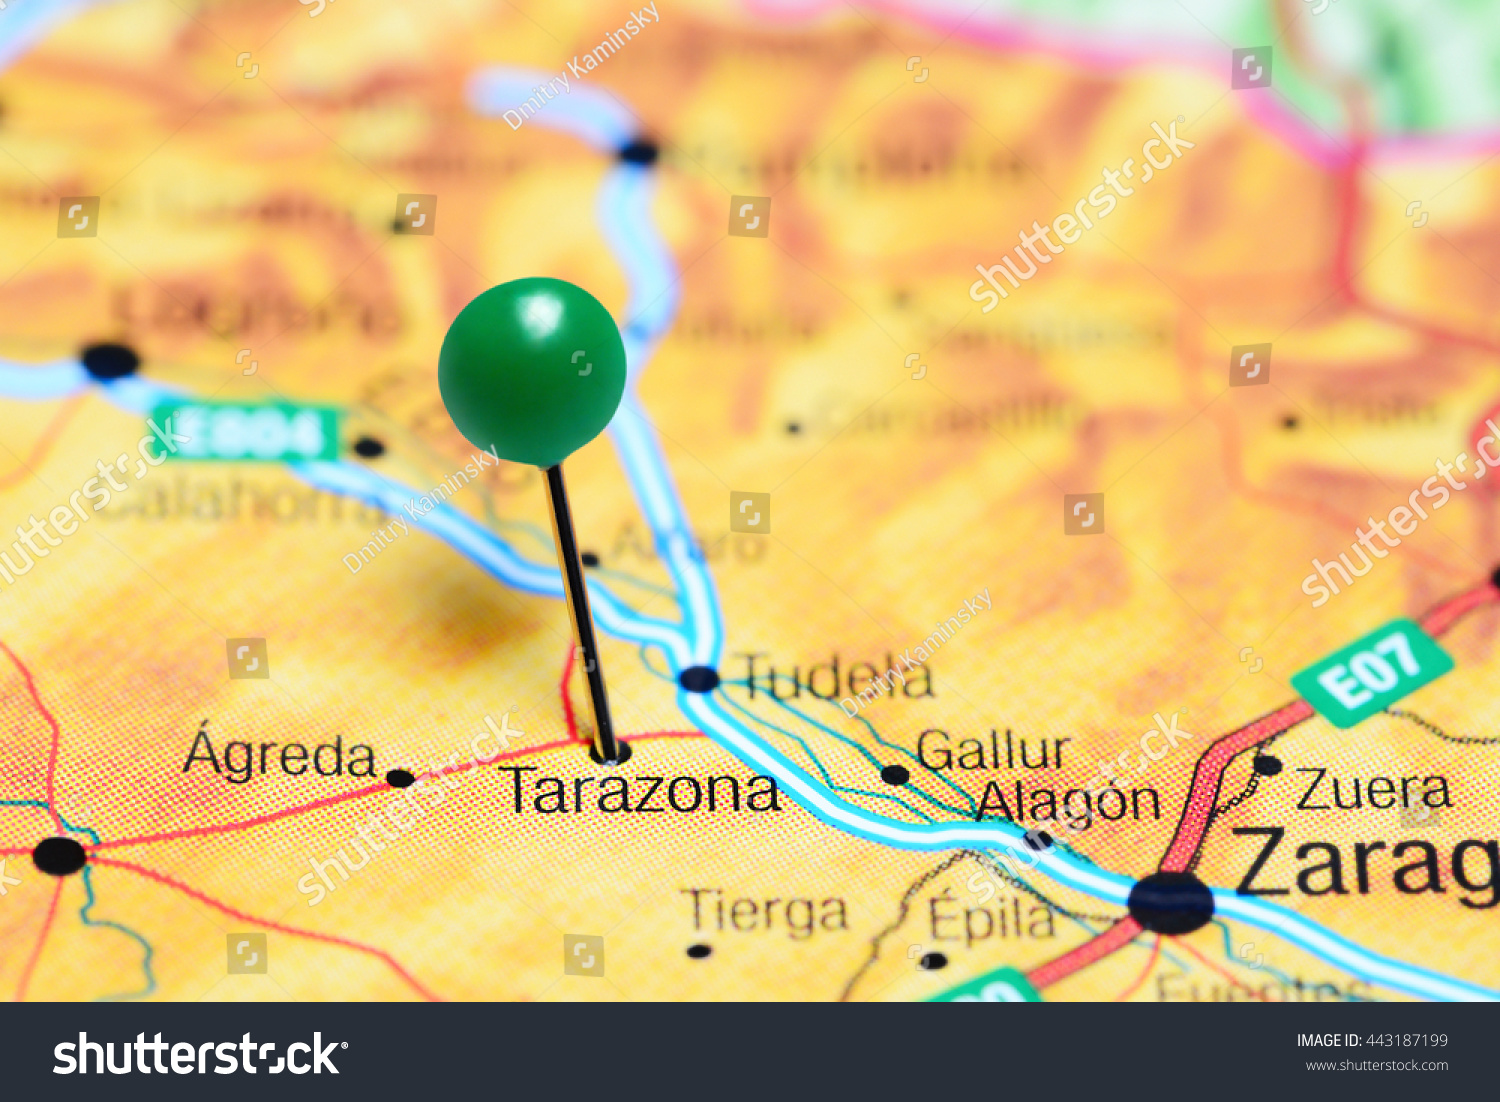 Tarazona Pinned On Map Spain Stock Photo (Edit Now) 443187199